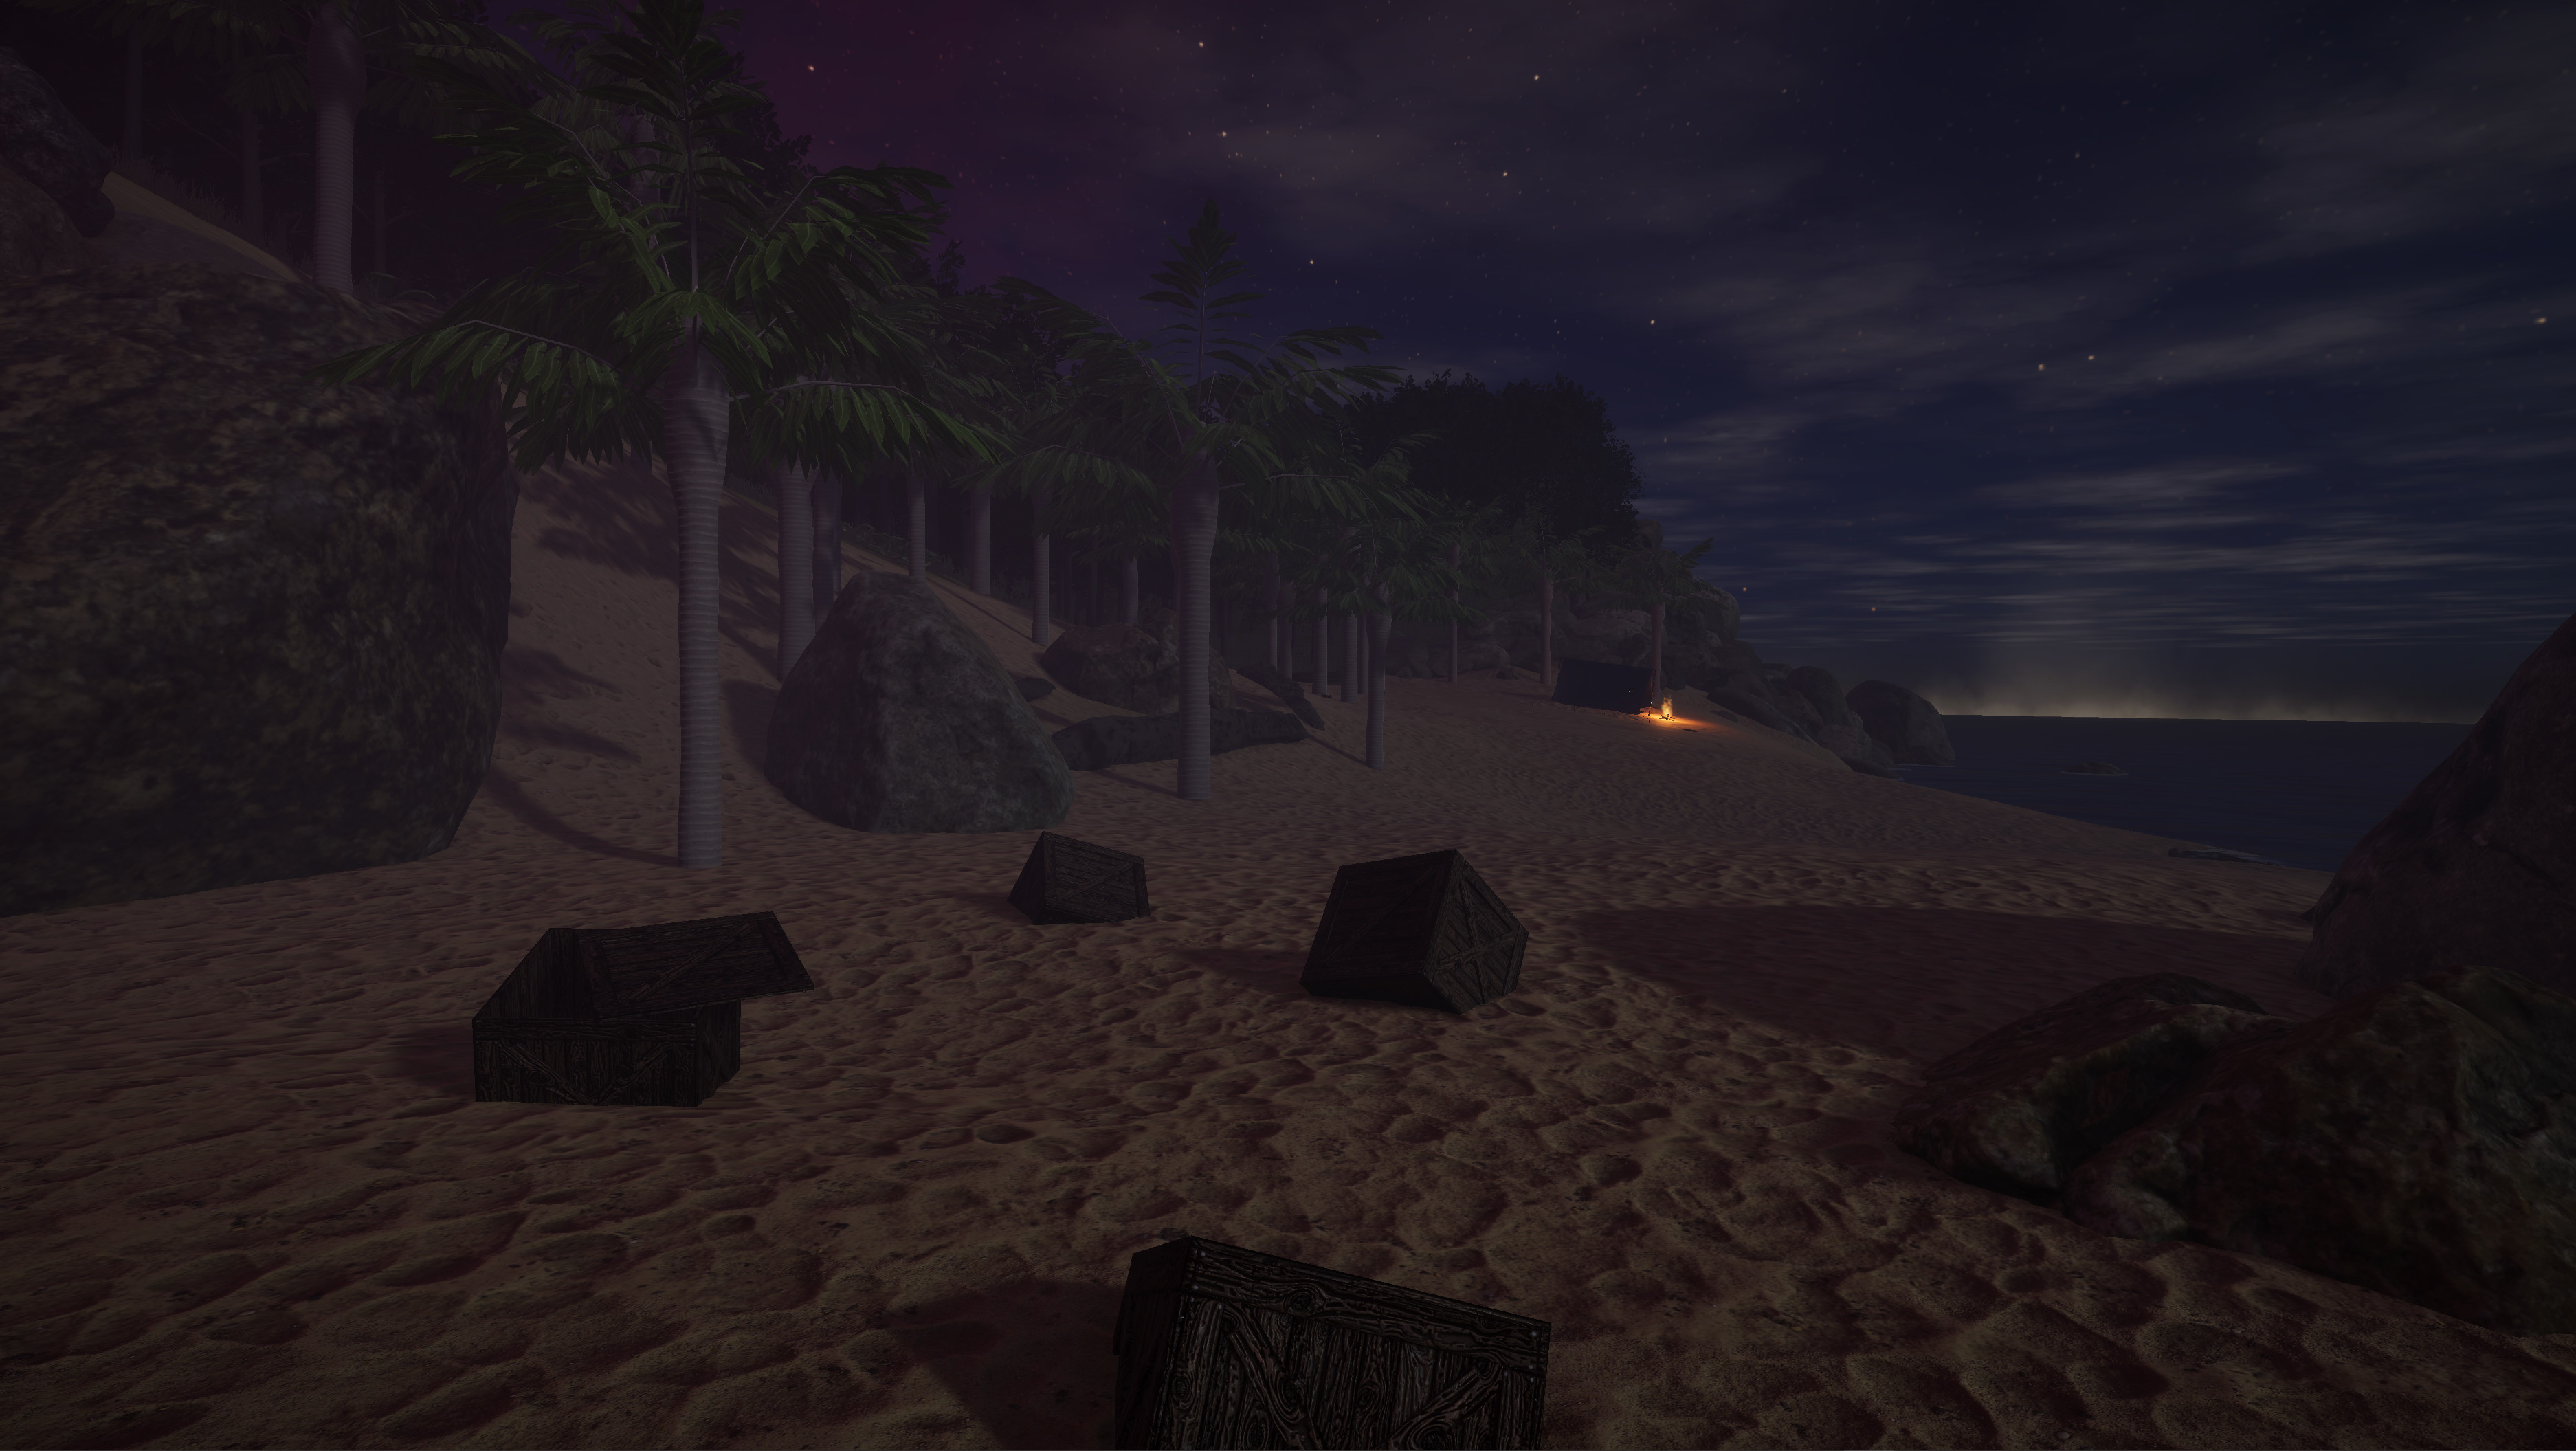 Sand material created in Designer. I also created the palm trees and crates.